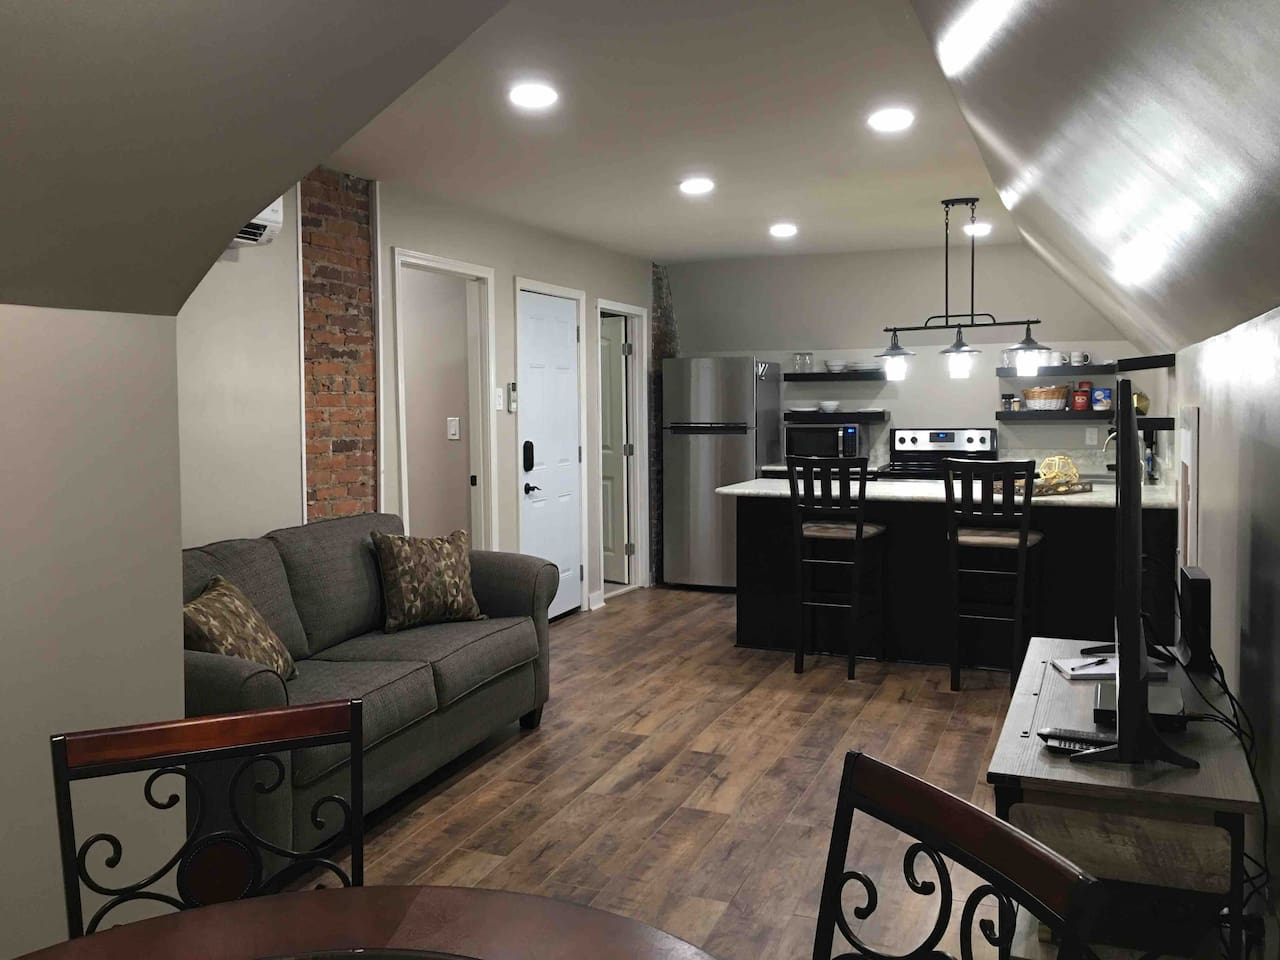 Nearly 500 square feet of quiet, comfortable living space.